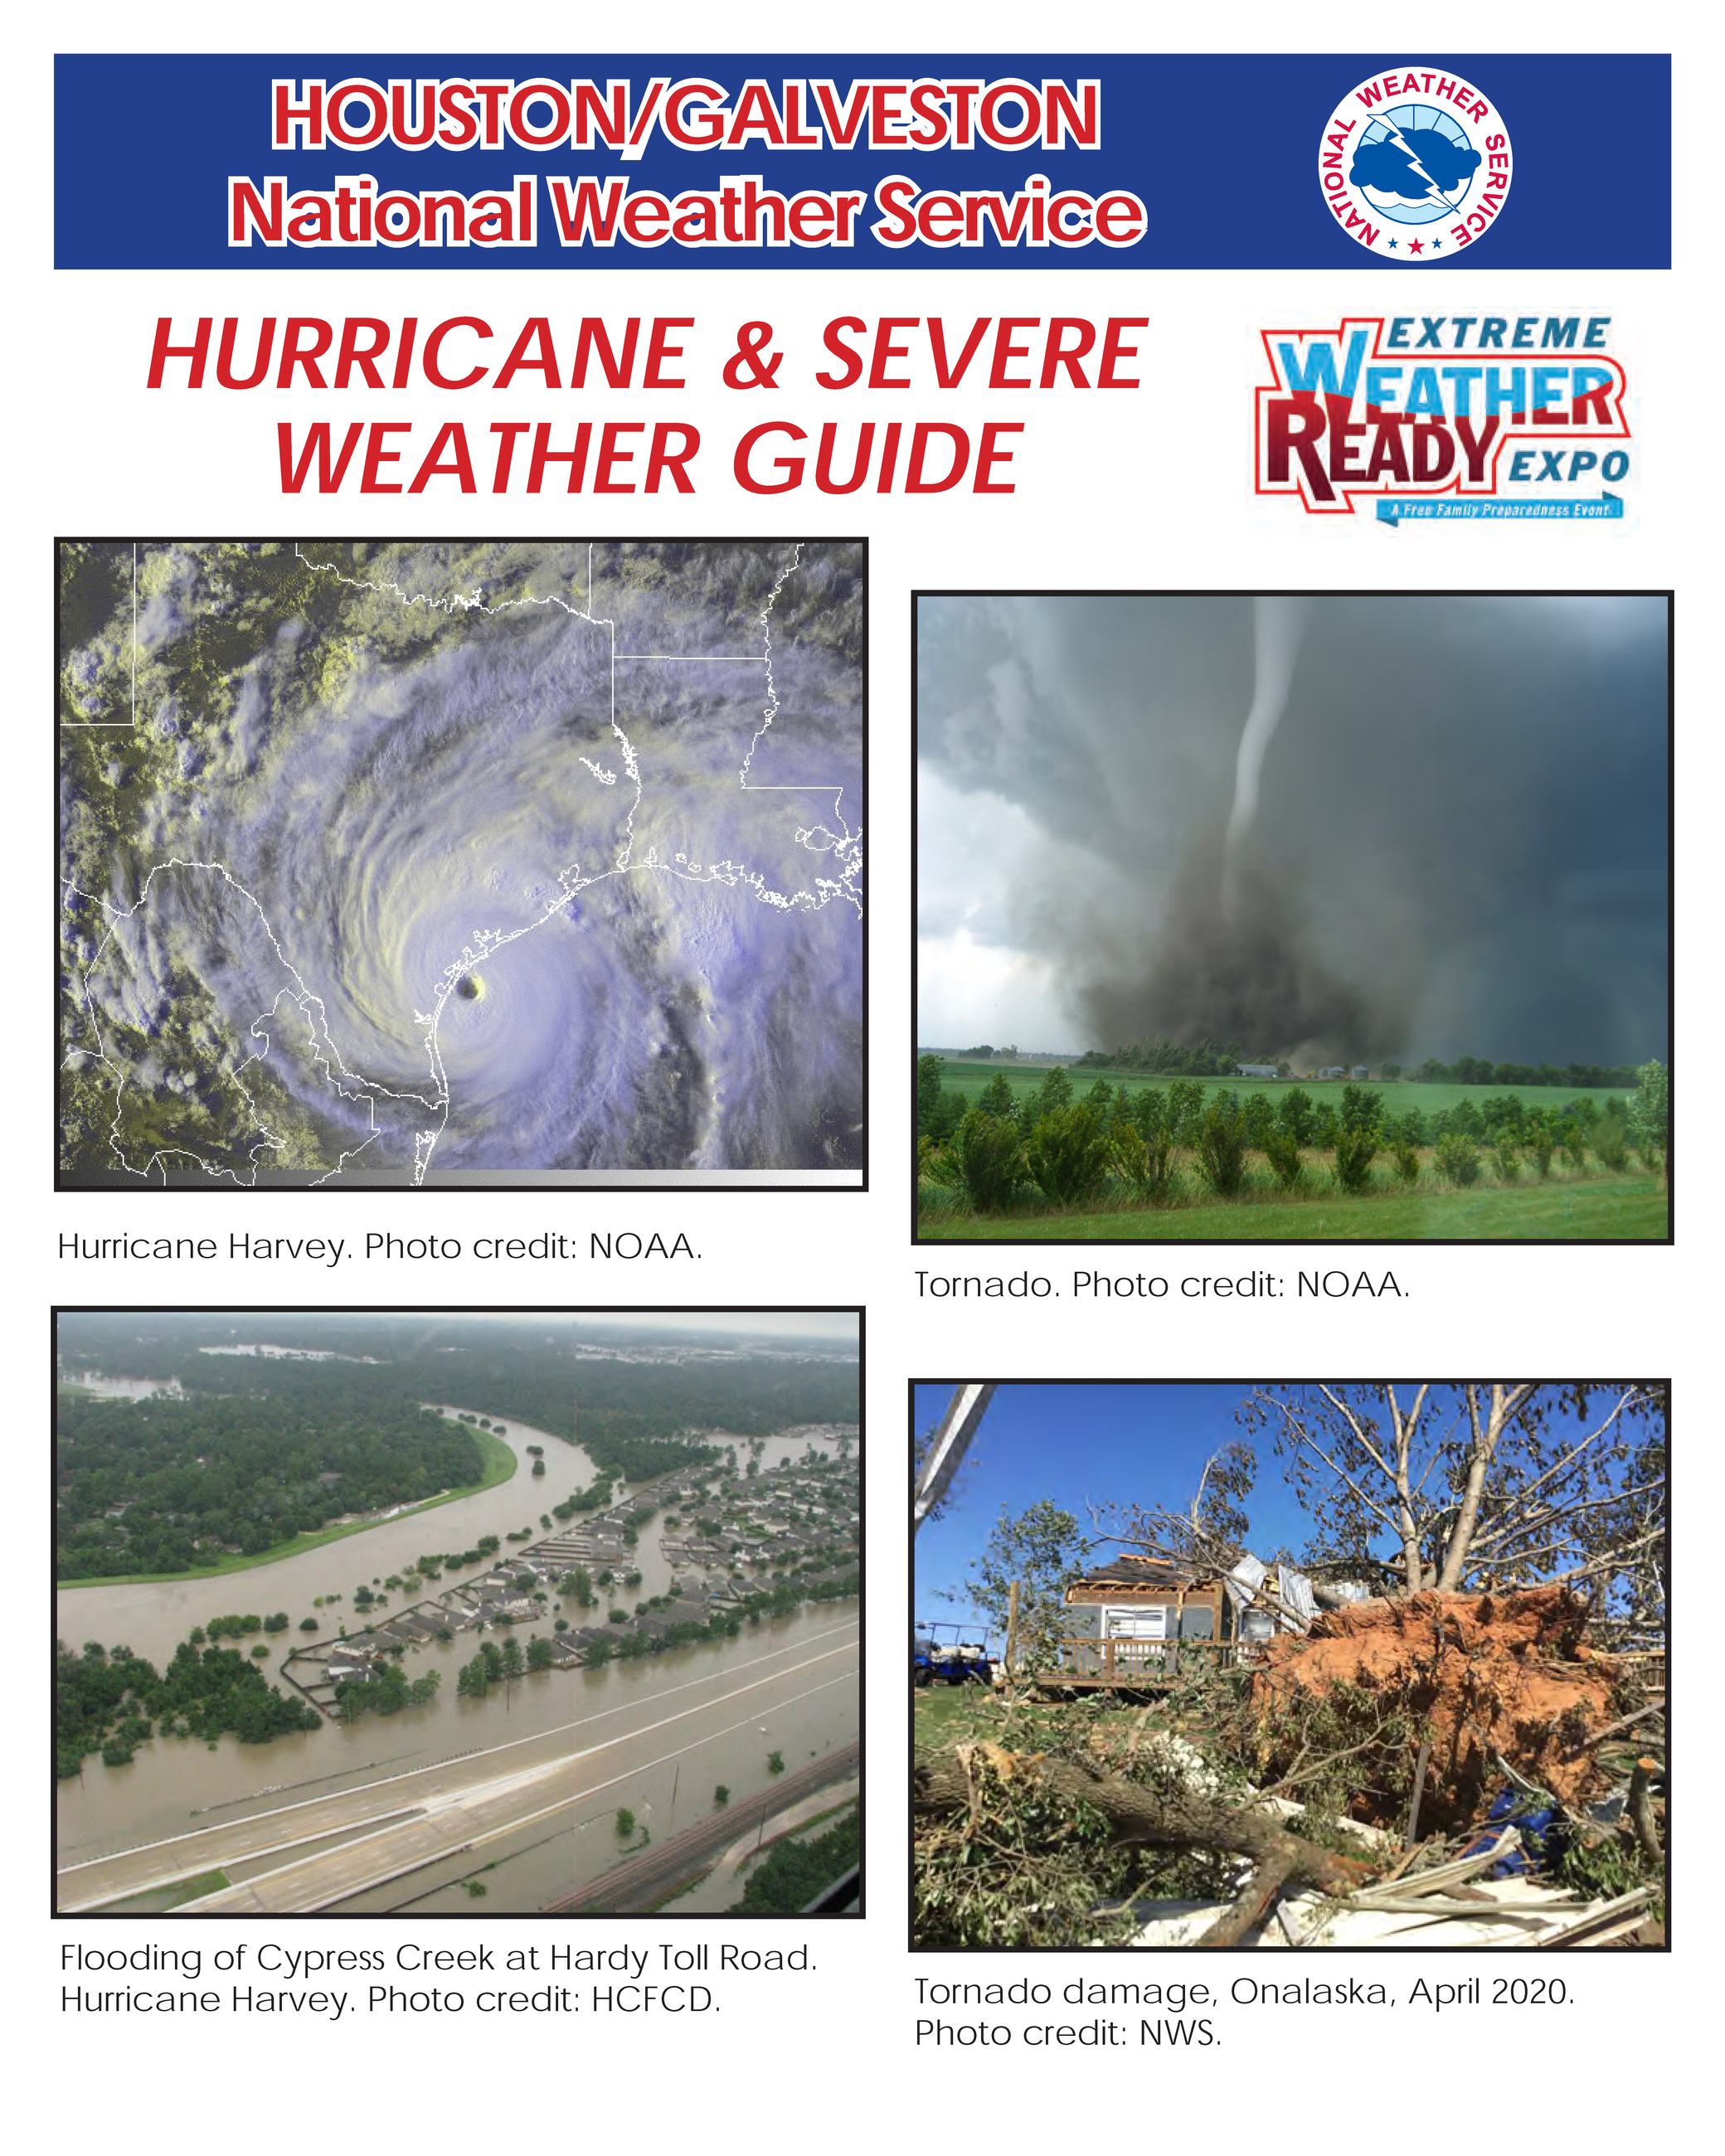 2020 Hurricane Guide Cover with photos of hurricanes